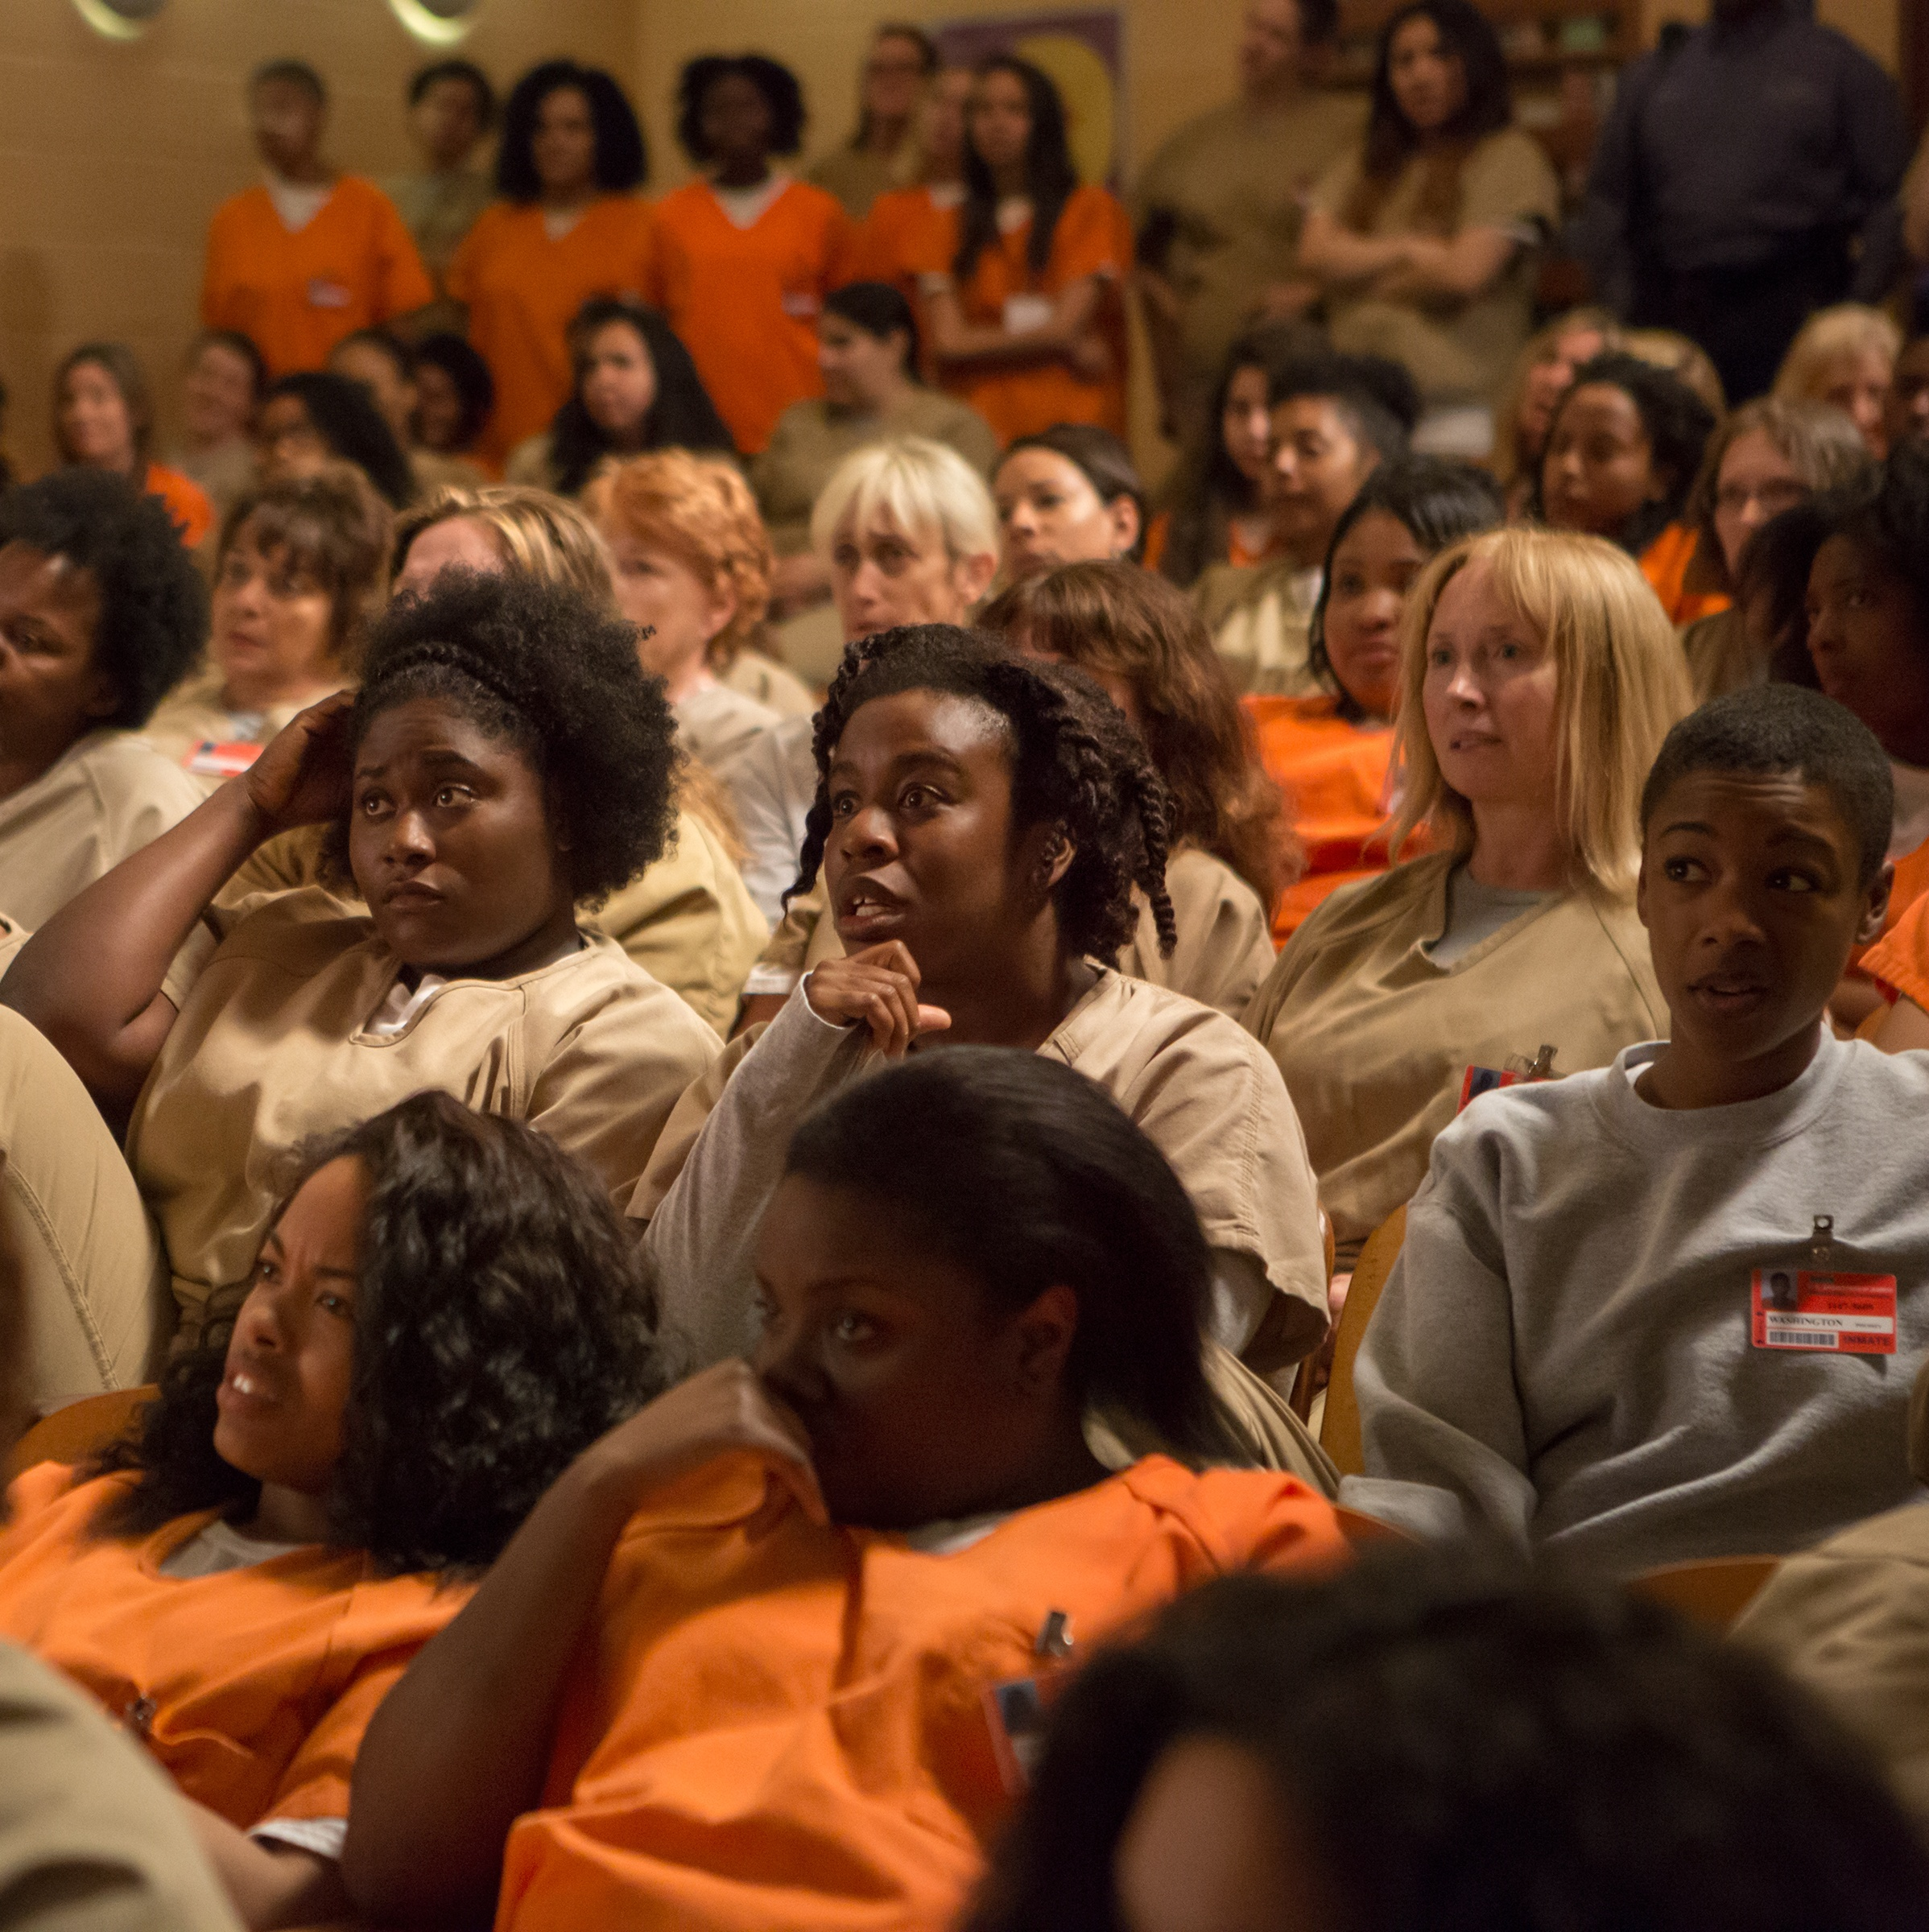 oitnb 4020706 02060 r 25 Things You Didn't Know About Orange Is The New Black